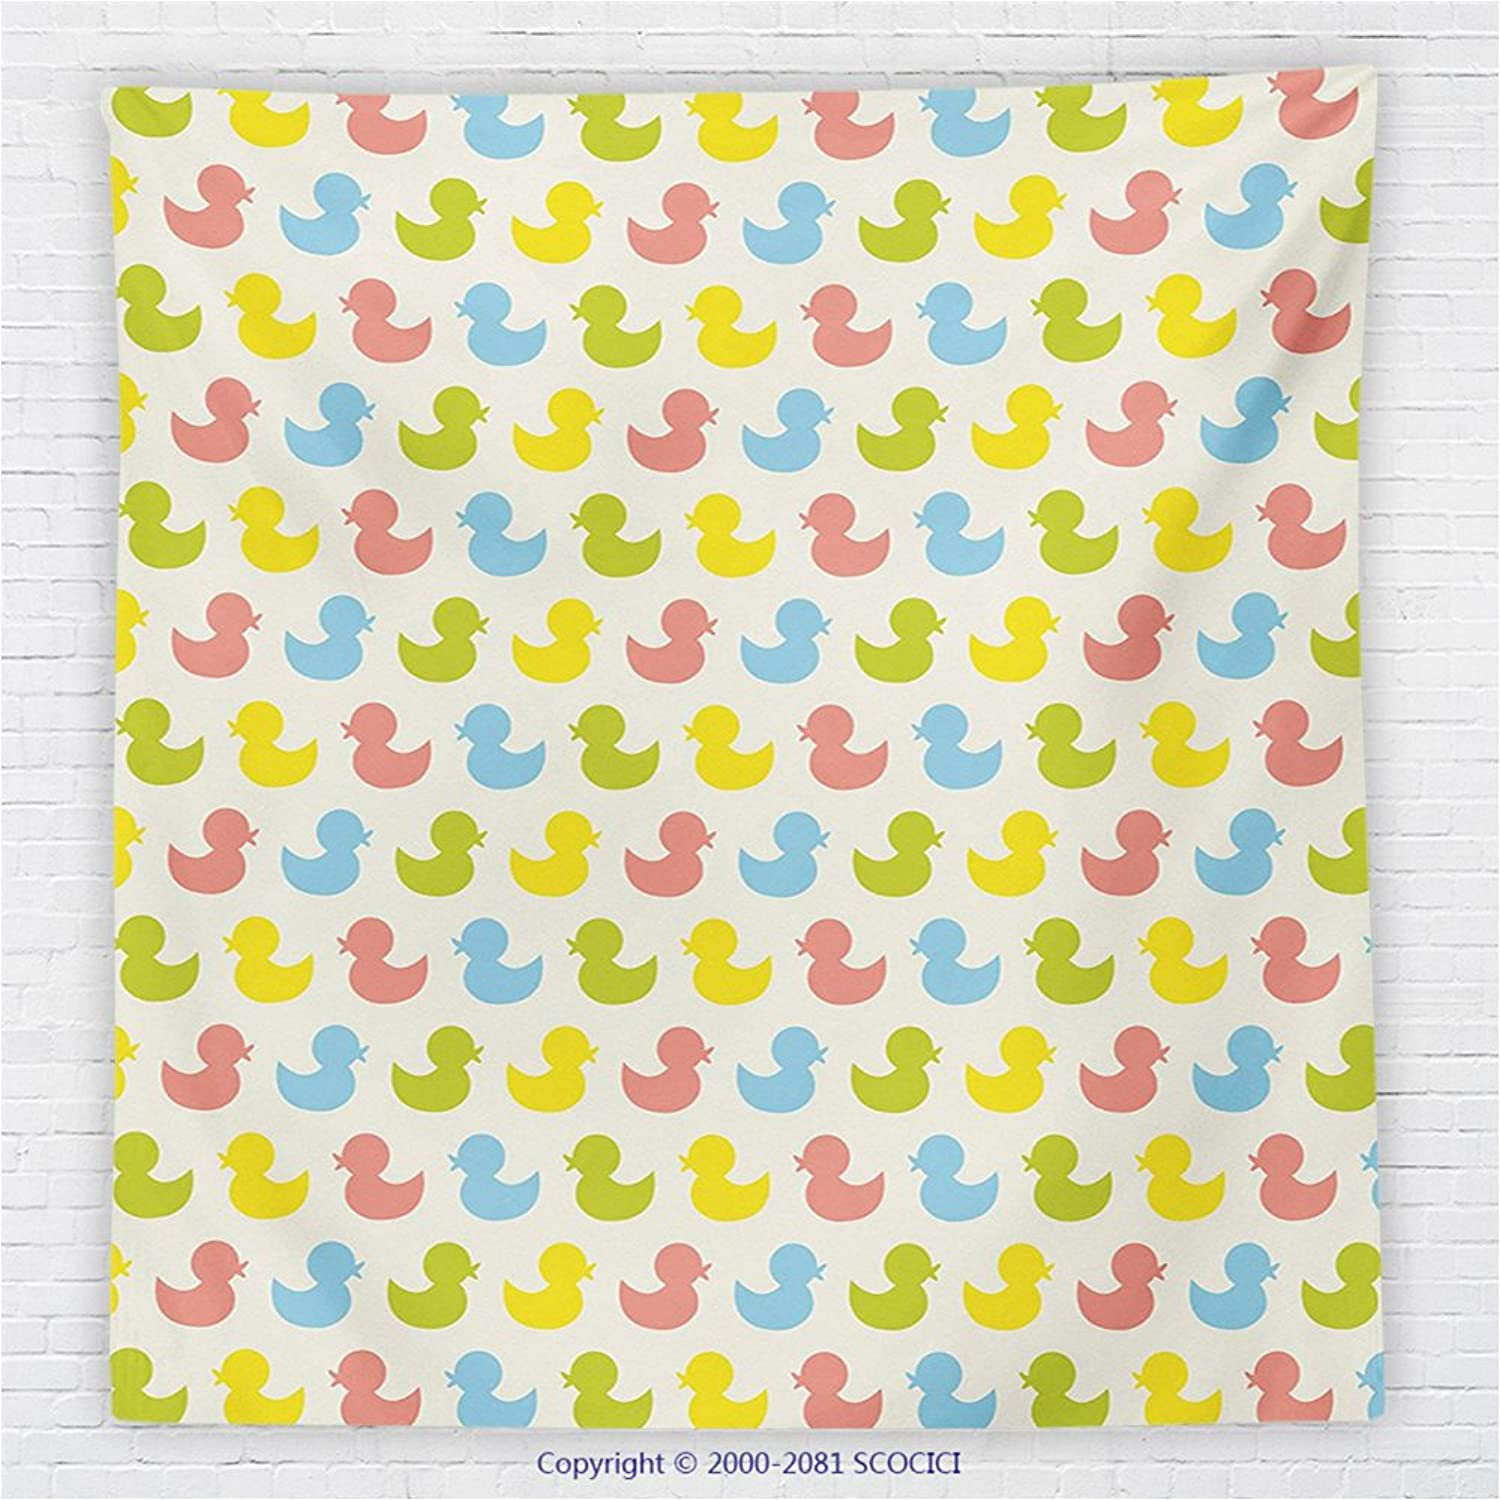 59 x 59 Inches Rubber Duck Fleece Throw Blanket colorful Ducklings Baby Animals Theme Pastel Girls Boys Newborn Pattern Blanket